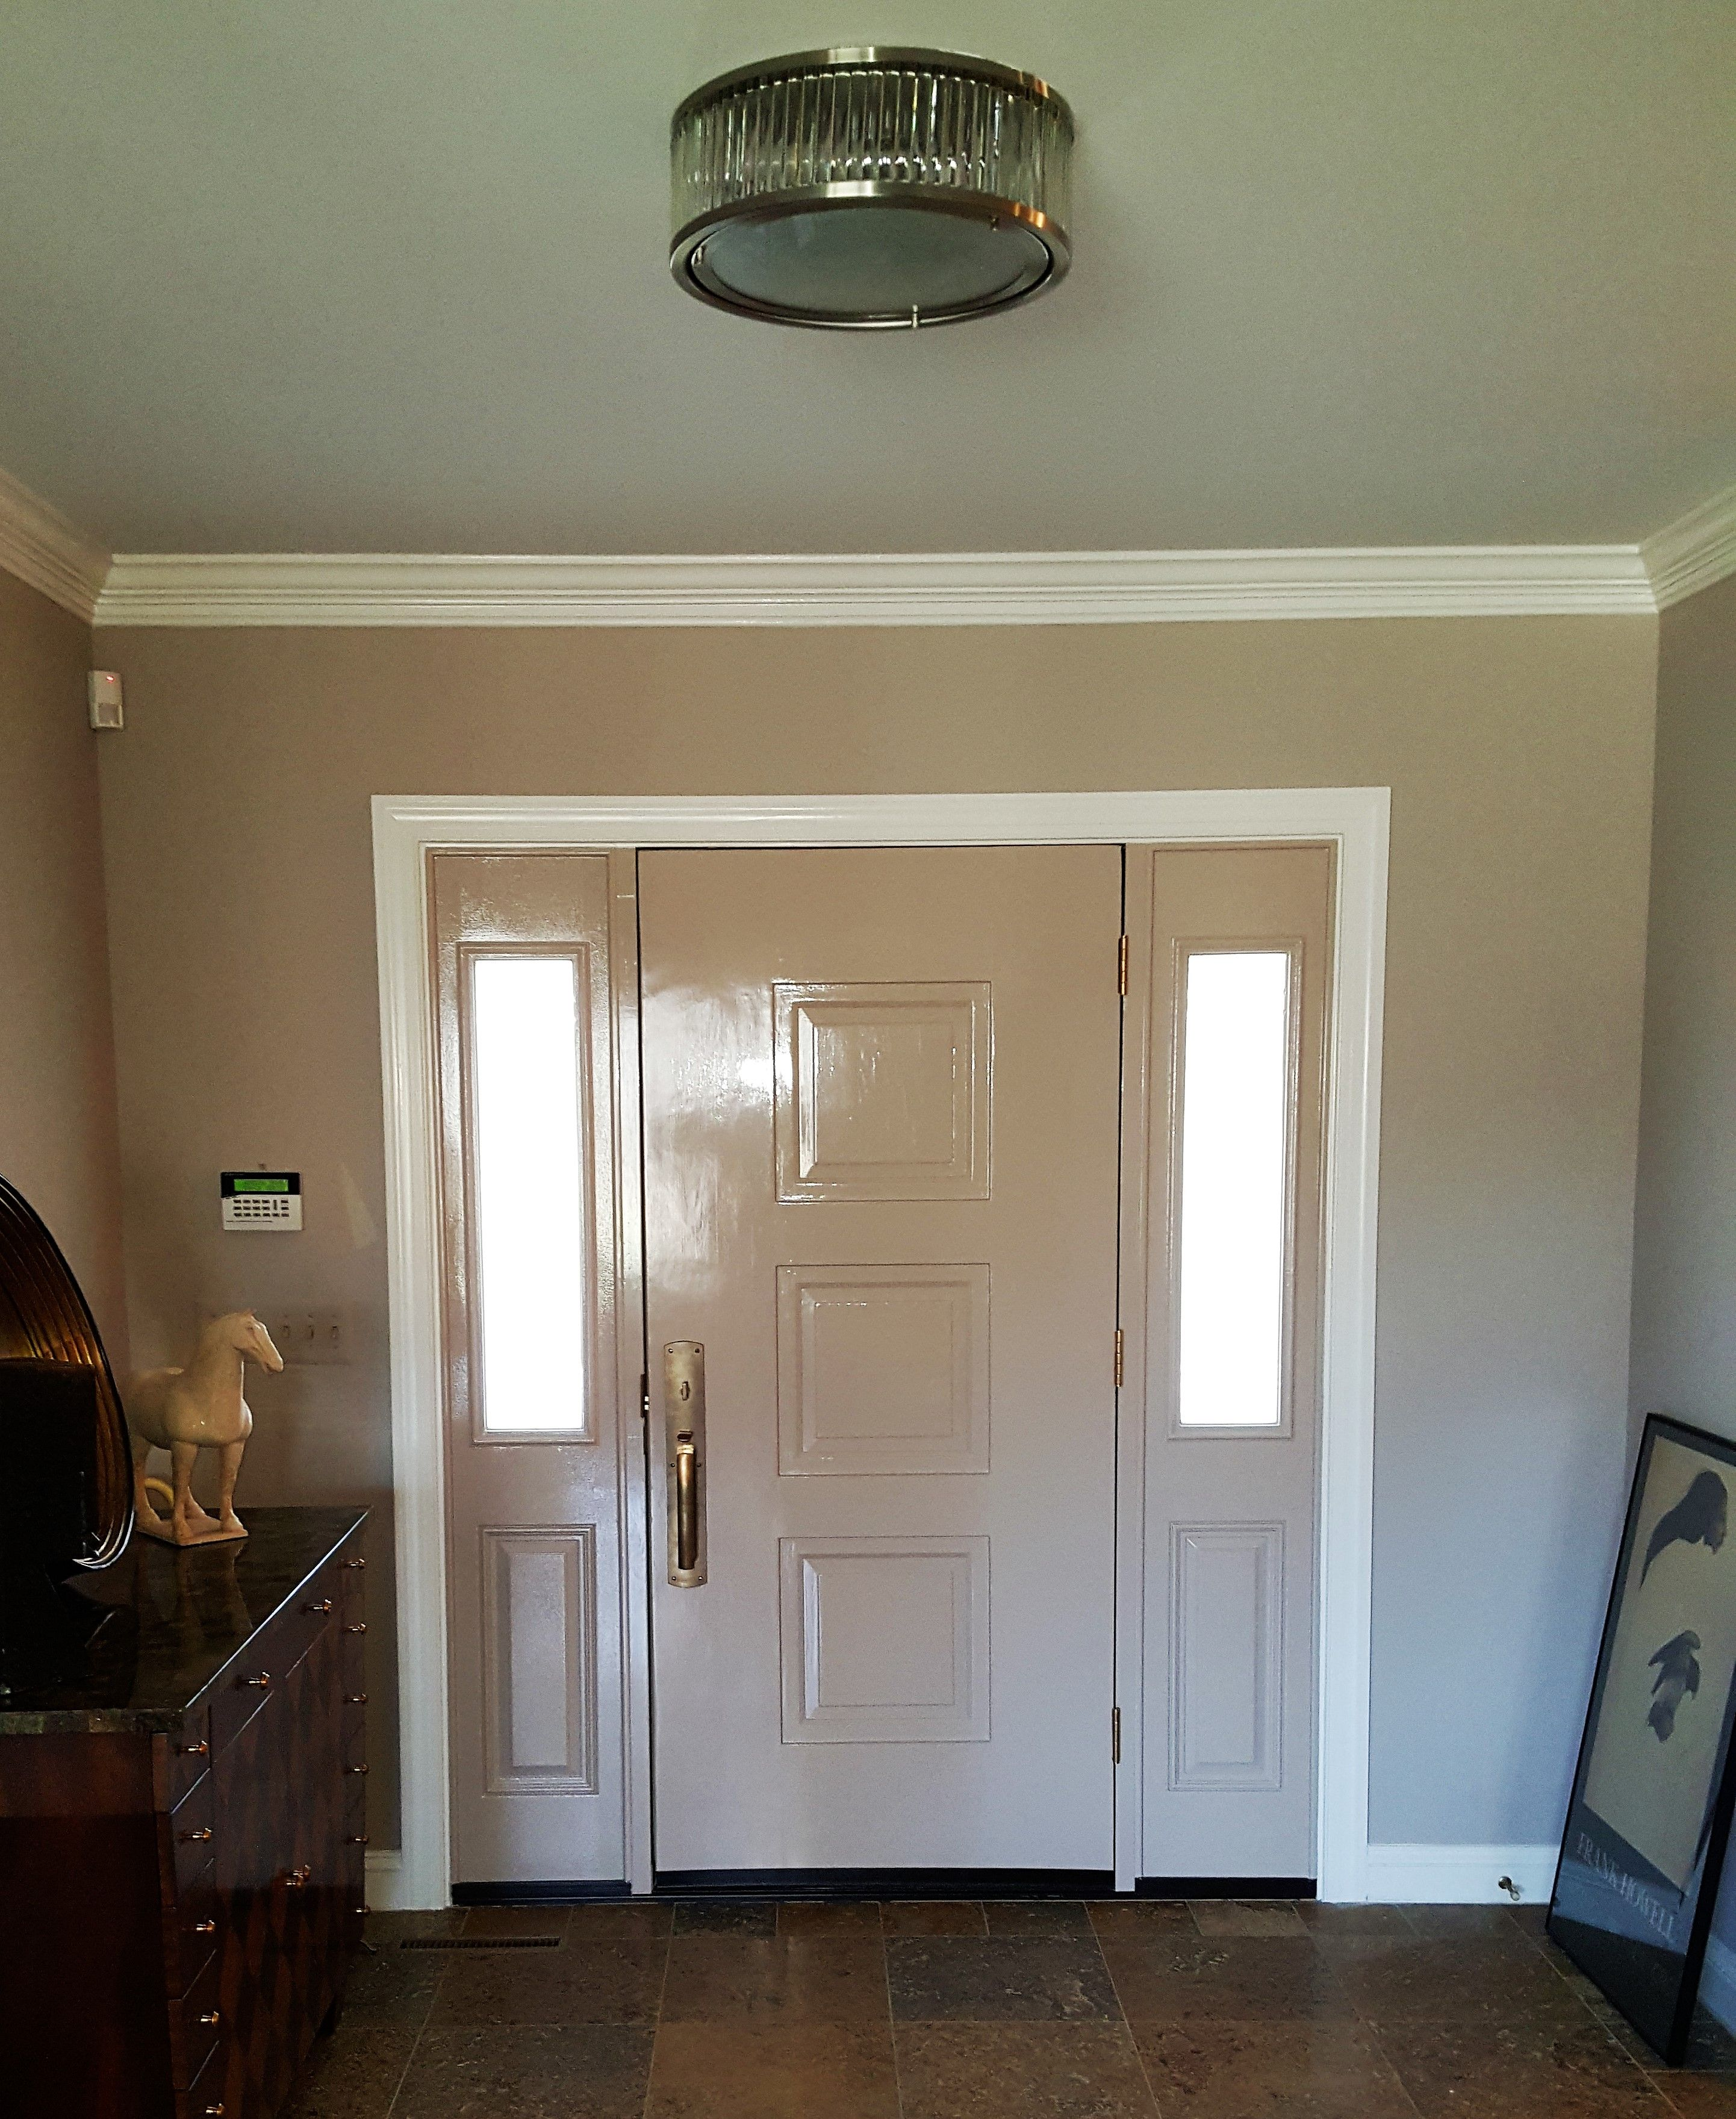 Brilliant Interior Paint Color Schemes: Matched Interior Door Color To The Walls & Ceiling